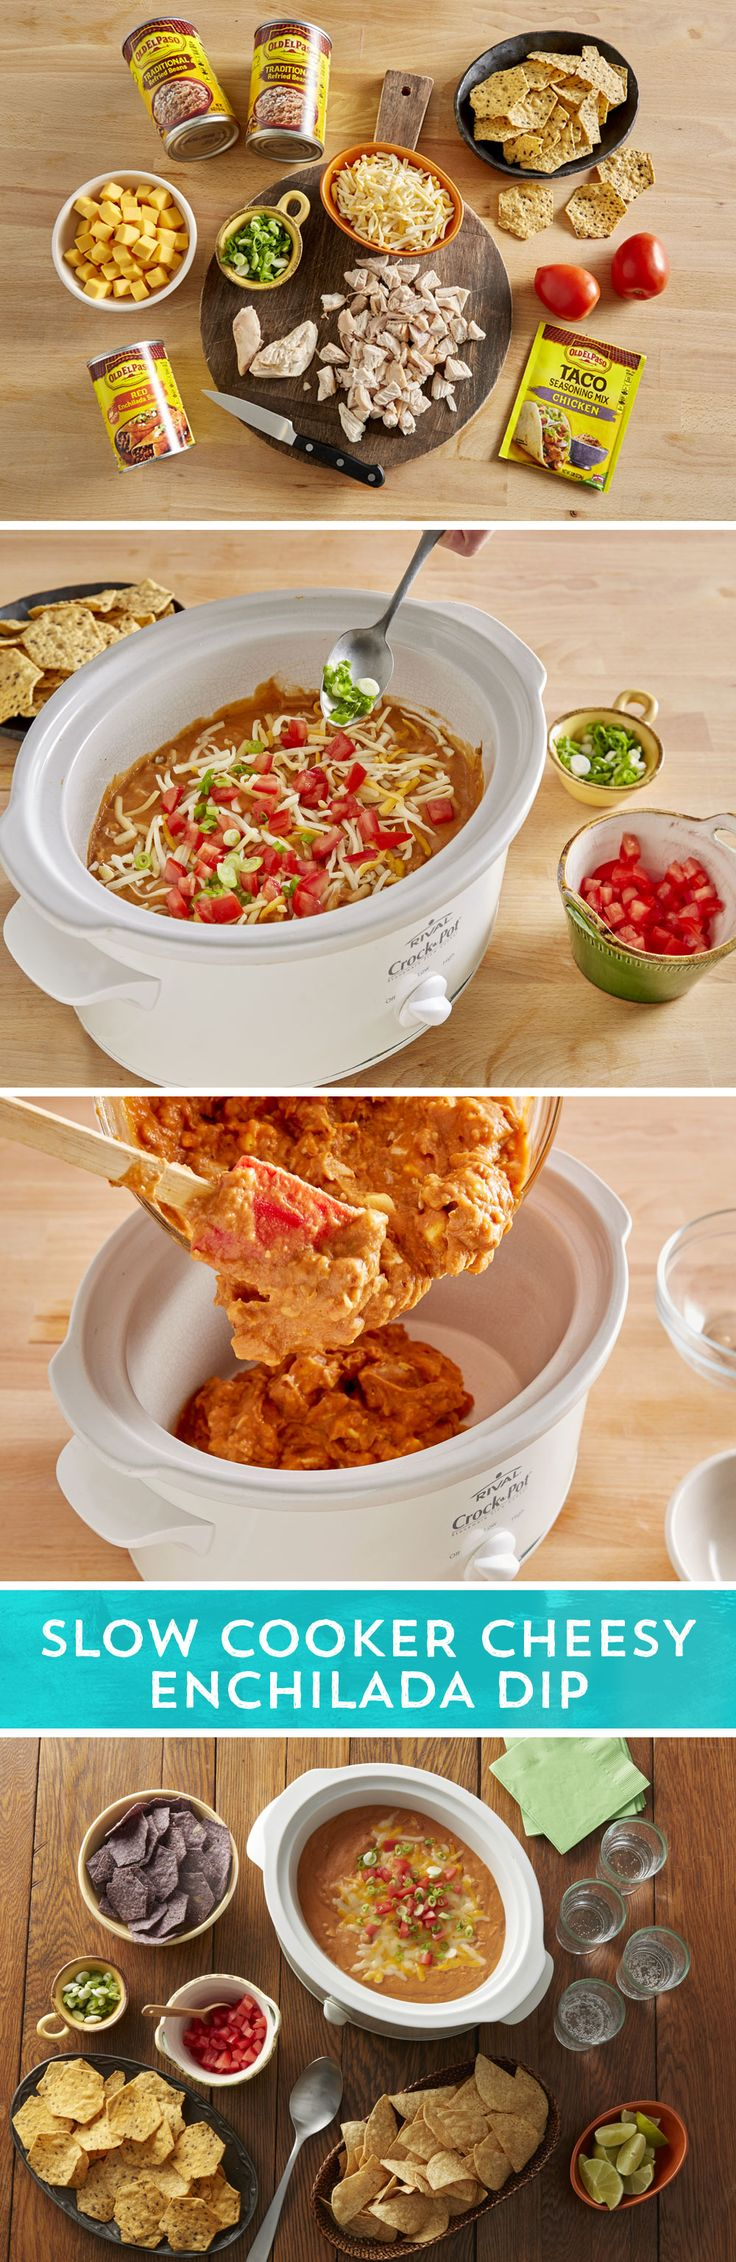 Chicken enchiladas meet cheesy bean dip in this easy slow cooker appetizer sure to please any crowd. Combine Old El Paso™ traditional refried beans, Old El Paso™ mild enchilada sauce, chopped rotisserie chicken, Old El Paso™ chicken taco seasoning, and Kraft™ Velveeta™ in a slow cooker. Fifteen minutes of prep and you get to set it and forget it. Pair it with your favorite chip for dipping and you've got the perfect dish for game day, potlucks, and more!